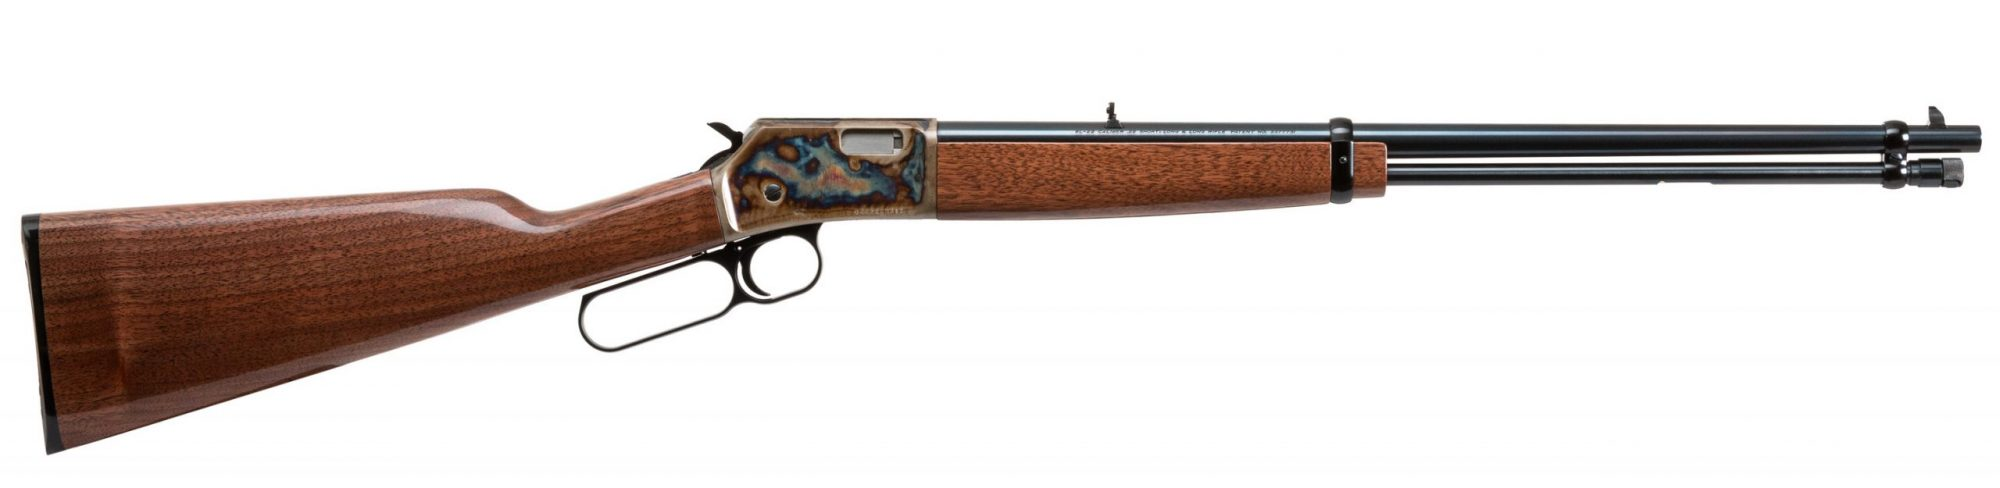 Photo of a Turnbull Finished Browning BL-22, featuring bone charcoal color case hardening by Turnbull Restoration